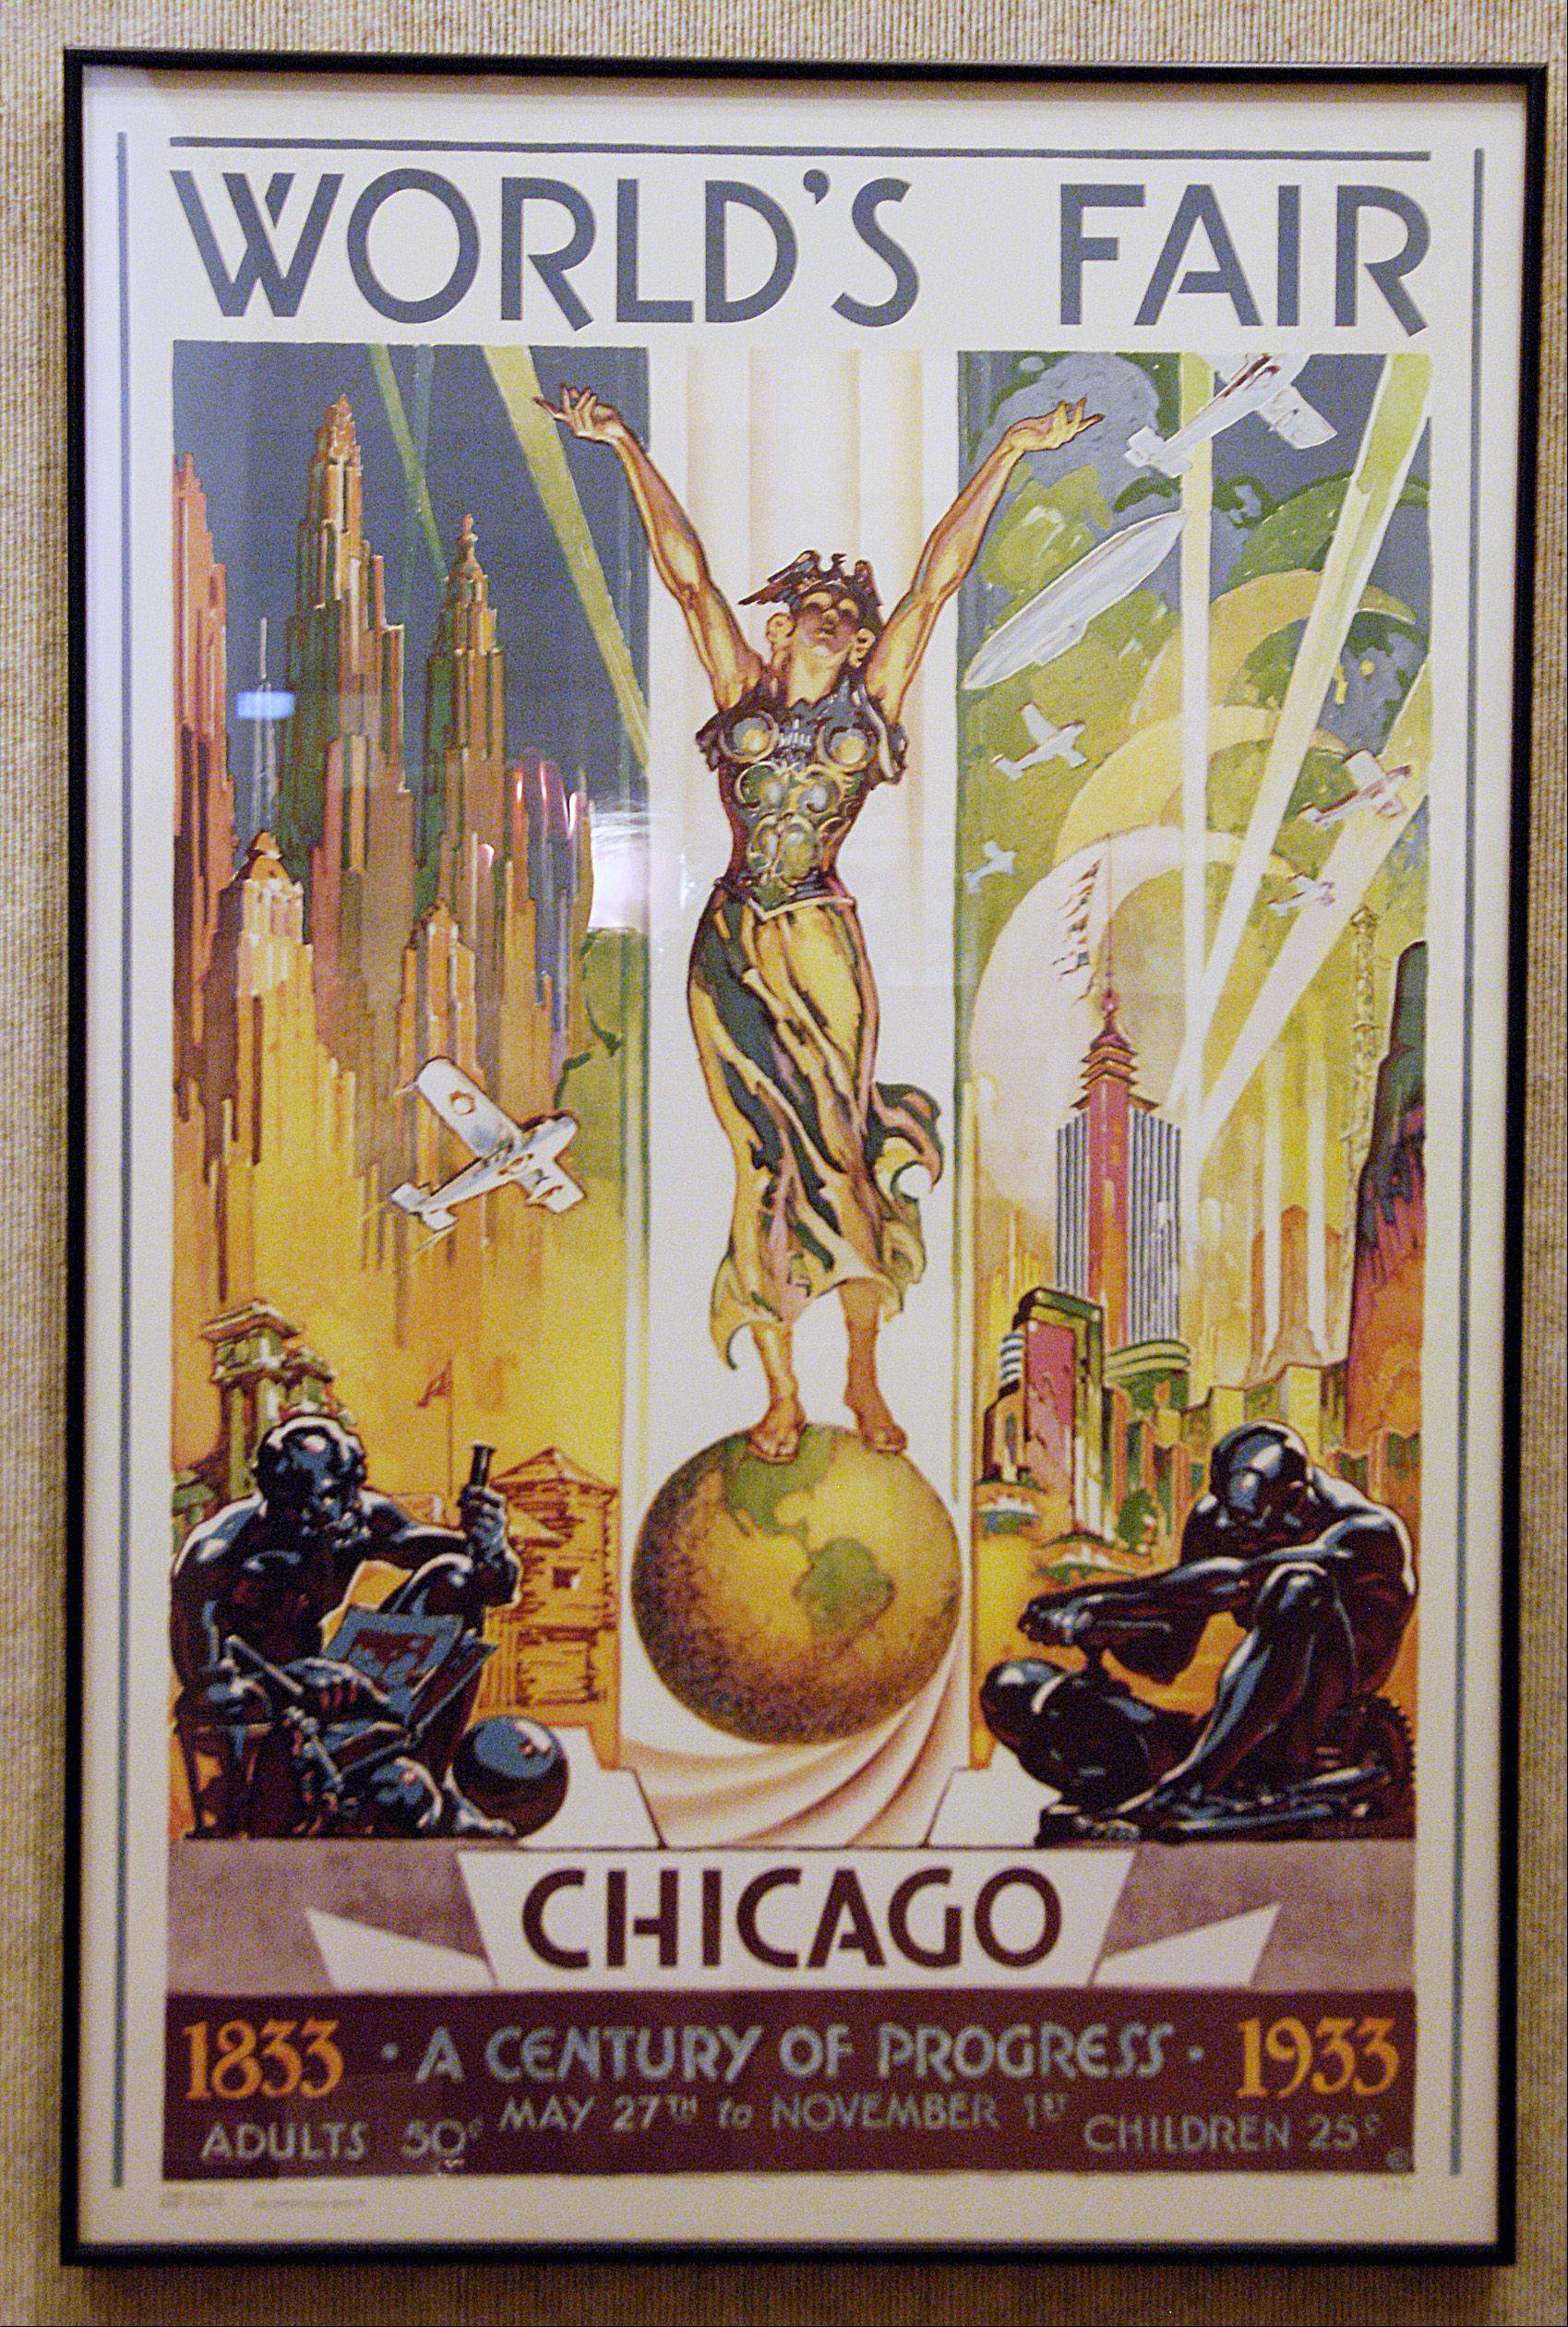 A 1933 Chicago World's Fair poster.